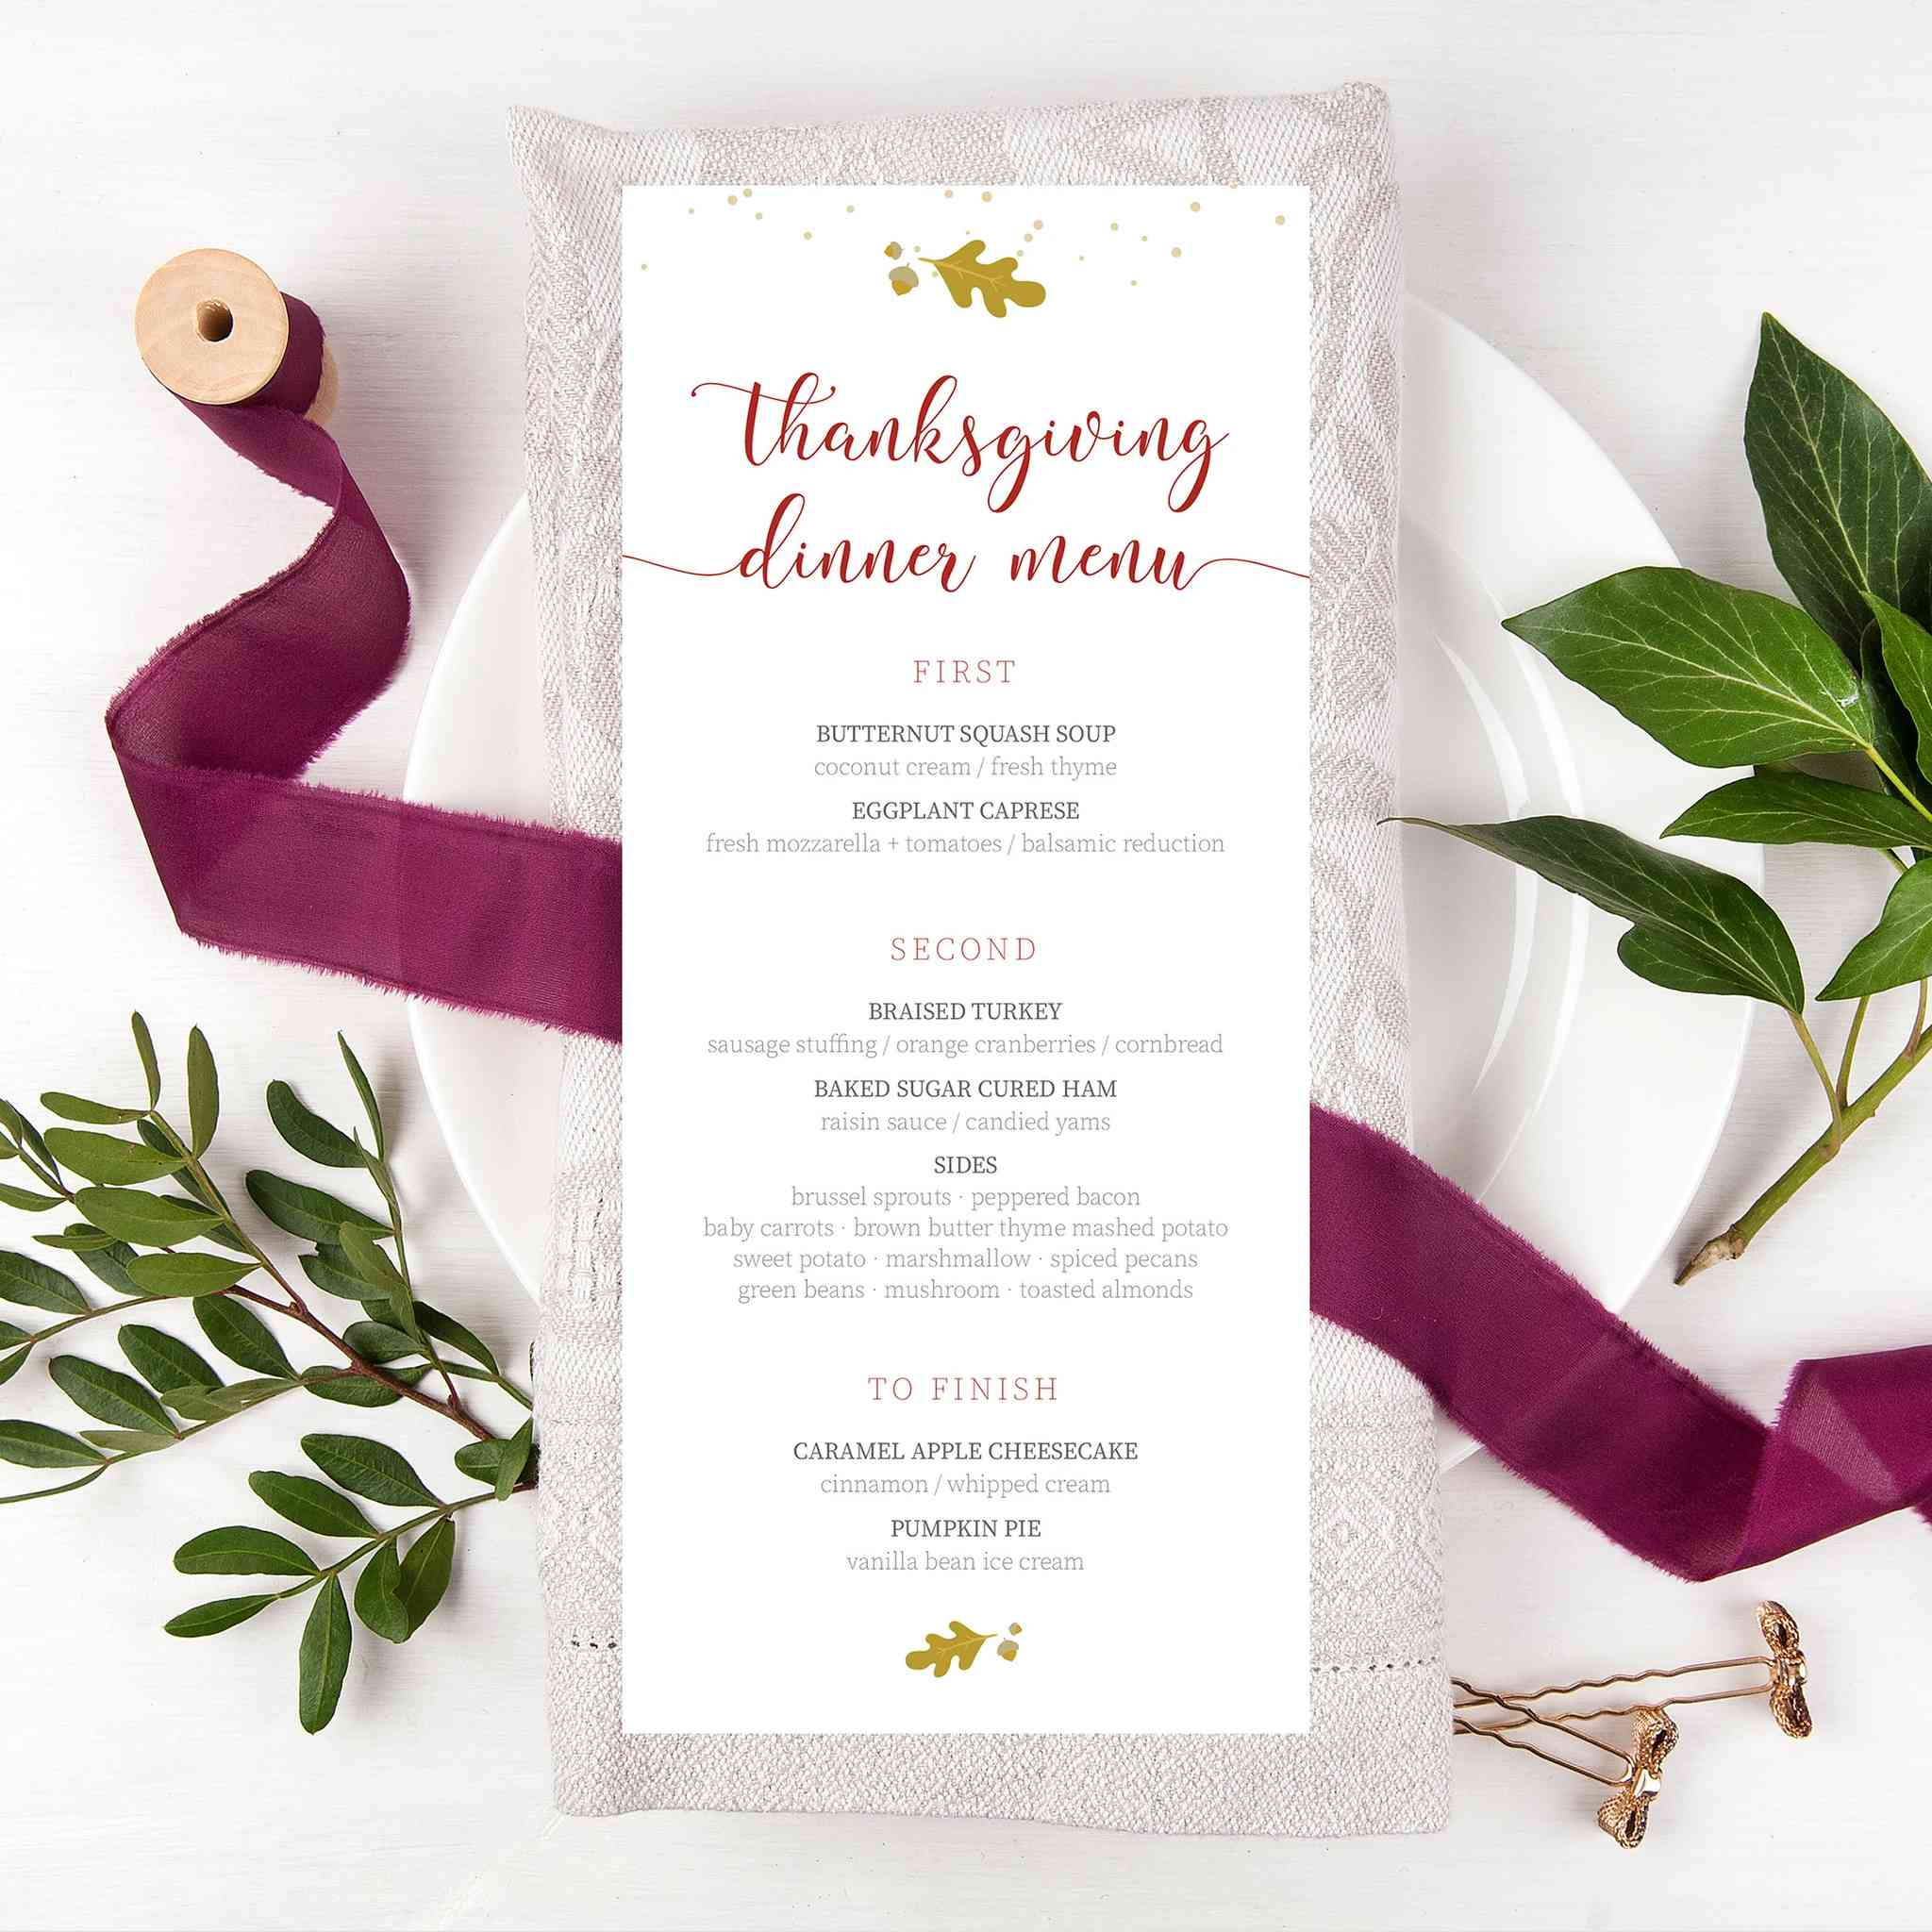 A Thanksgiving menu laying on a plate with ribbon and greenery